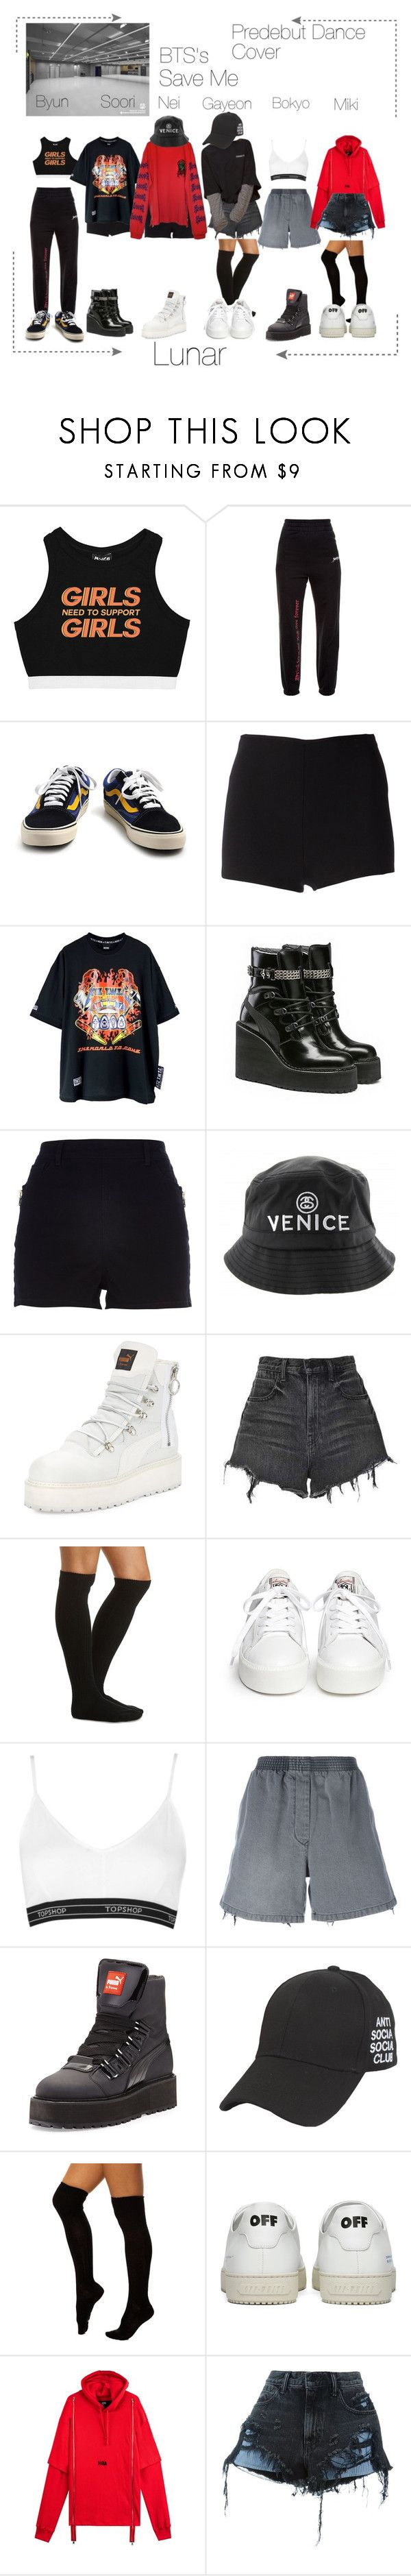 """Lunar 음력 Predebut Dance Cover"" by lunar-official ❤ liked on Polyvore featuring beauty, Minga, Vetements, Vans, Martin Grant, Puma, River Island, Alexander Wang, Charlotte Russe and Ash"